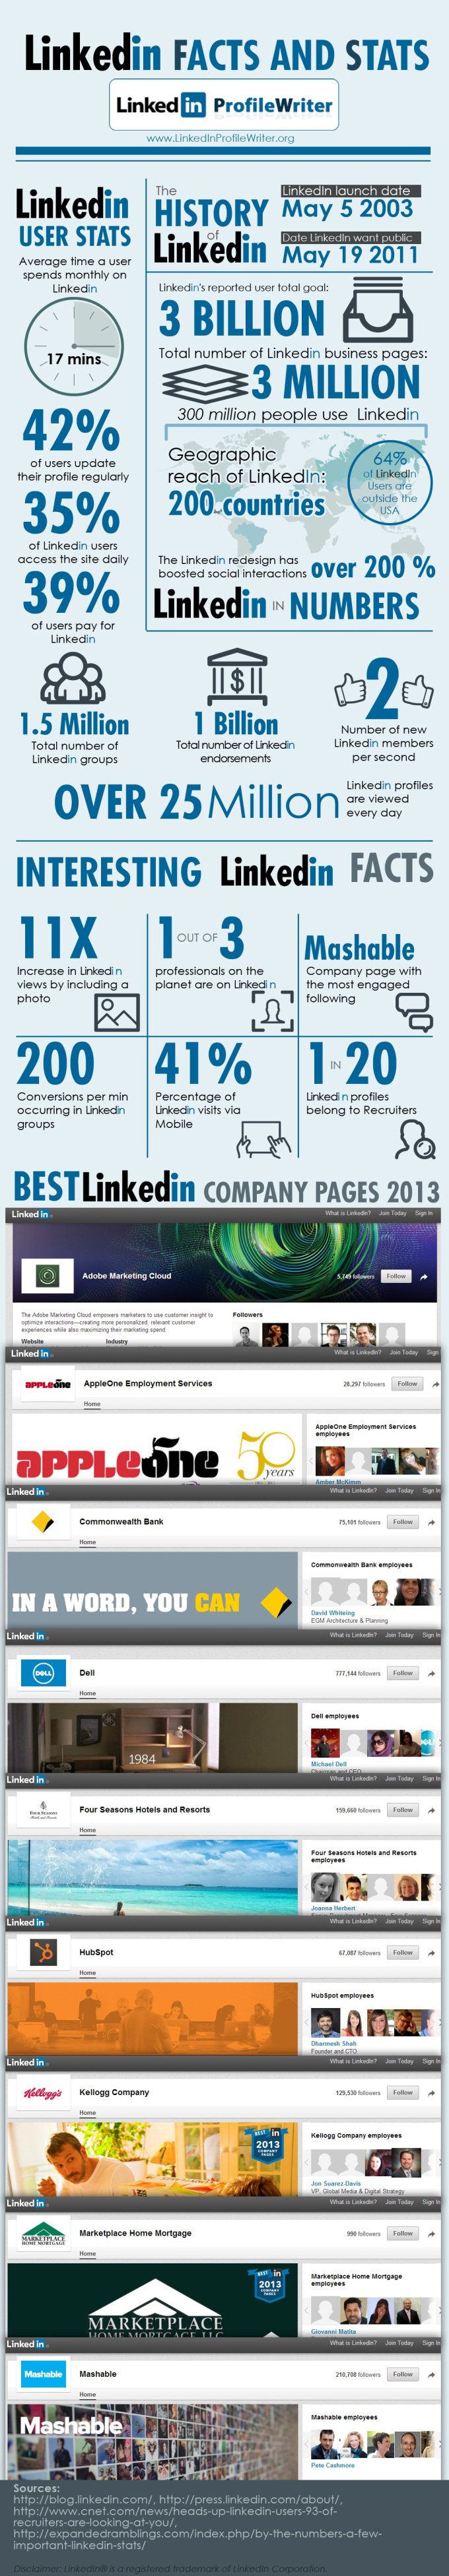 linkedin_infographic_stats_facts